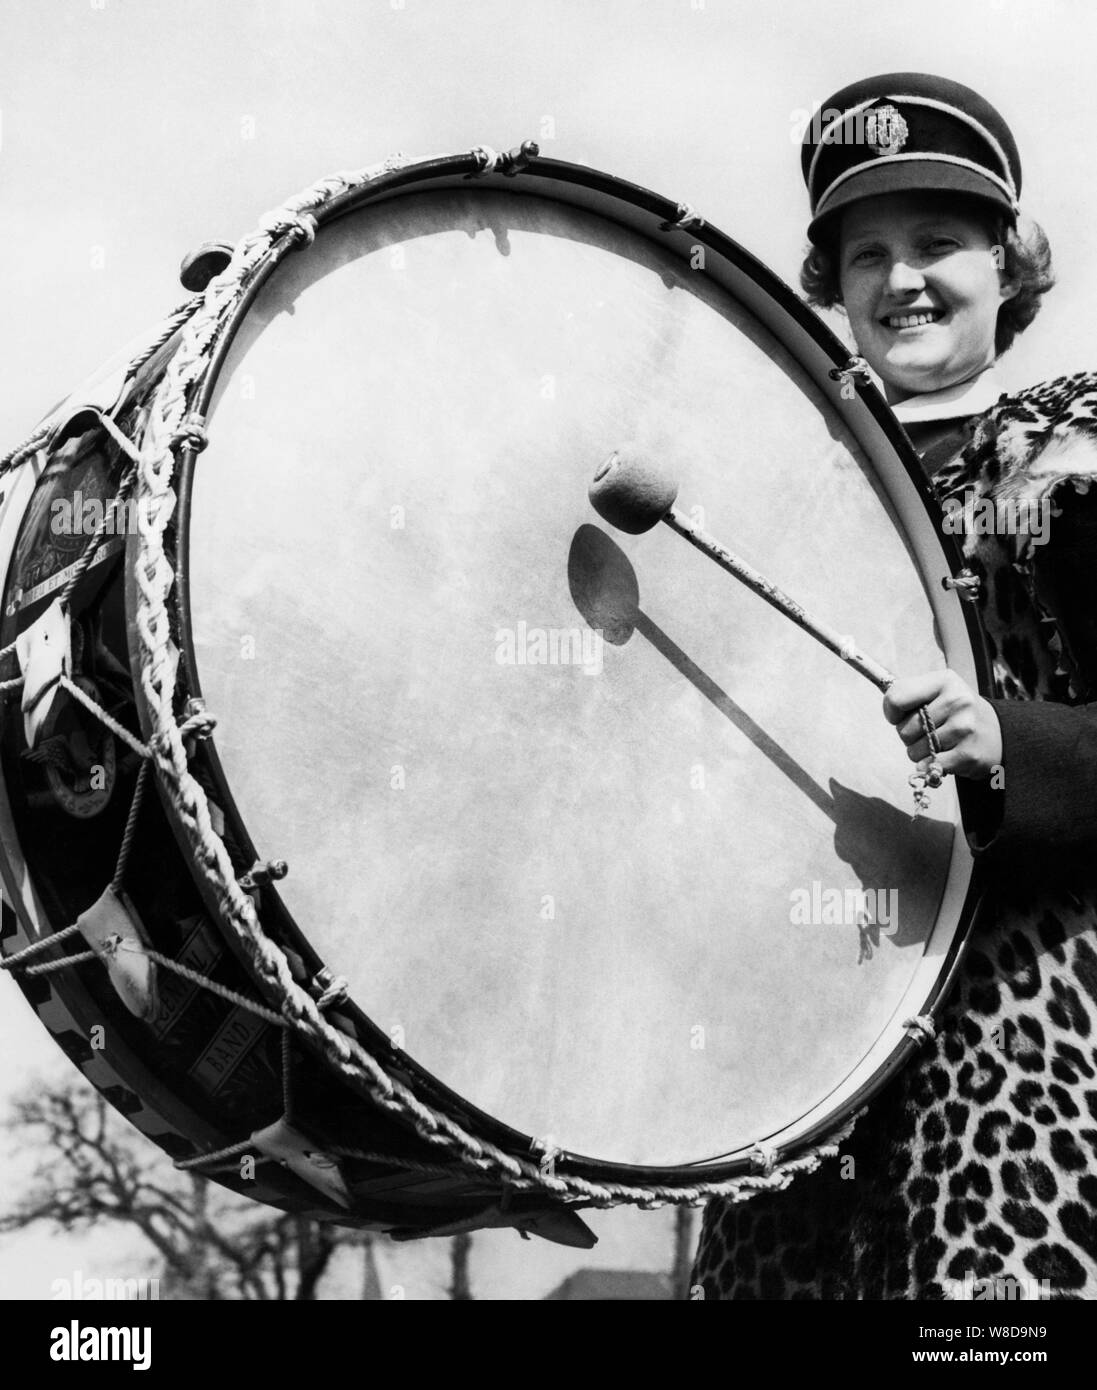 woman of the royal air force band at the drum, 1960 Stock Photo